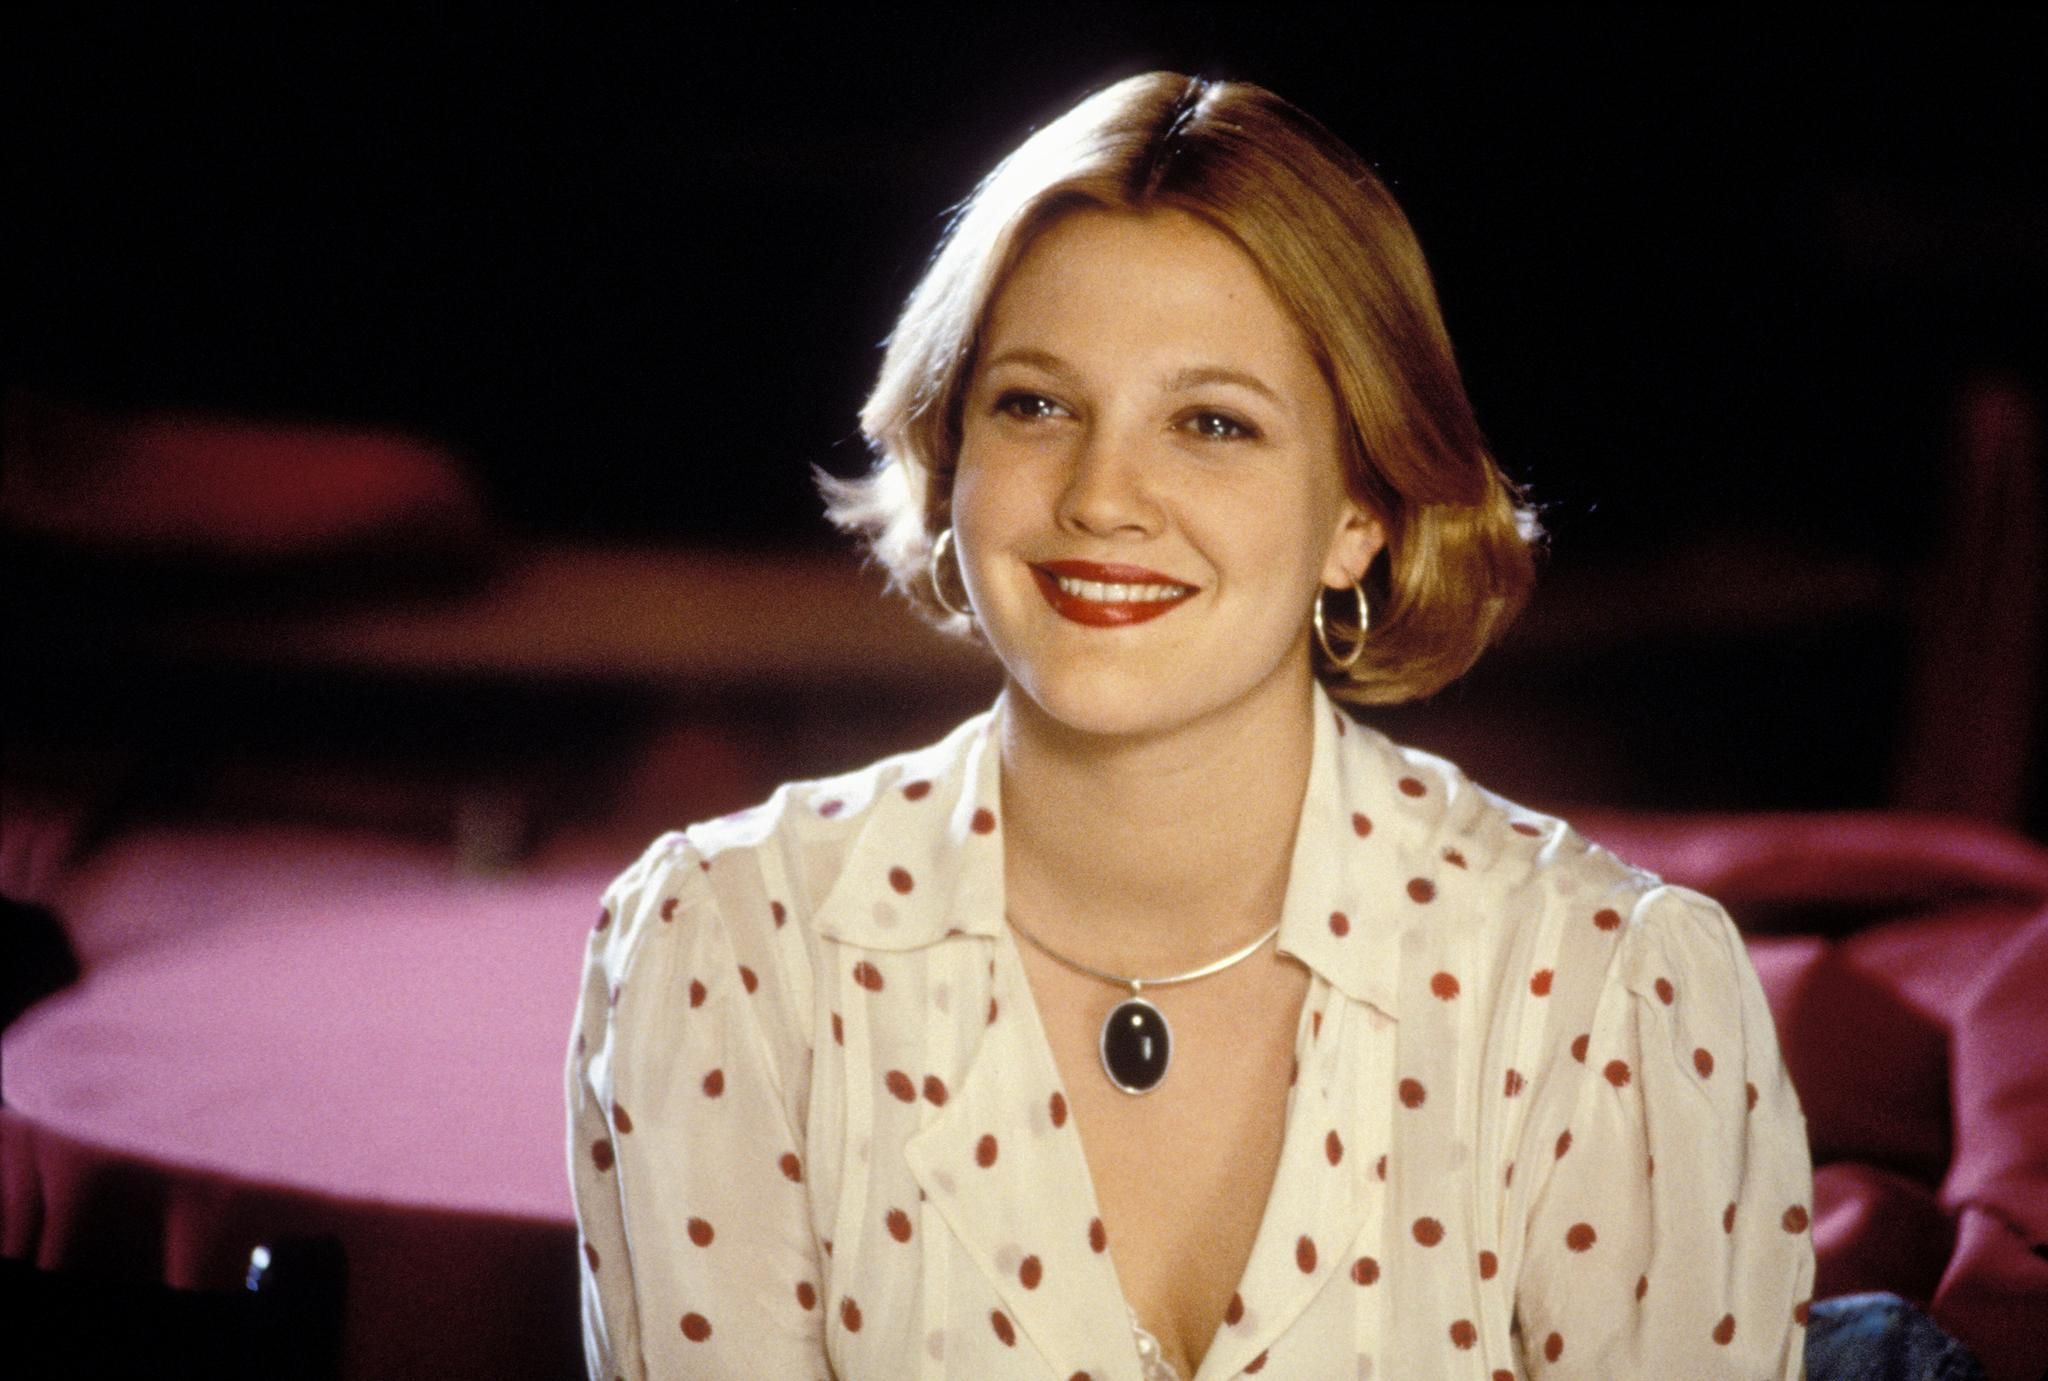 The Wedding Singer Drew Barrymore In Year Playing A Character From 1985